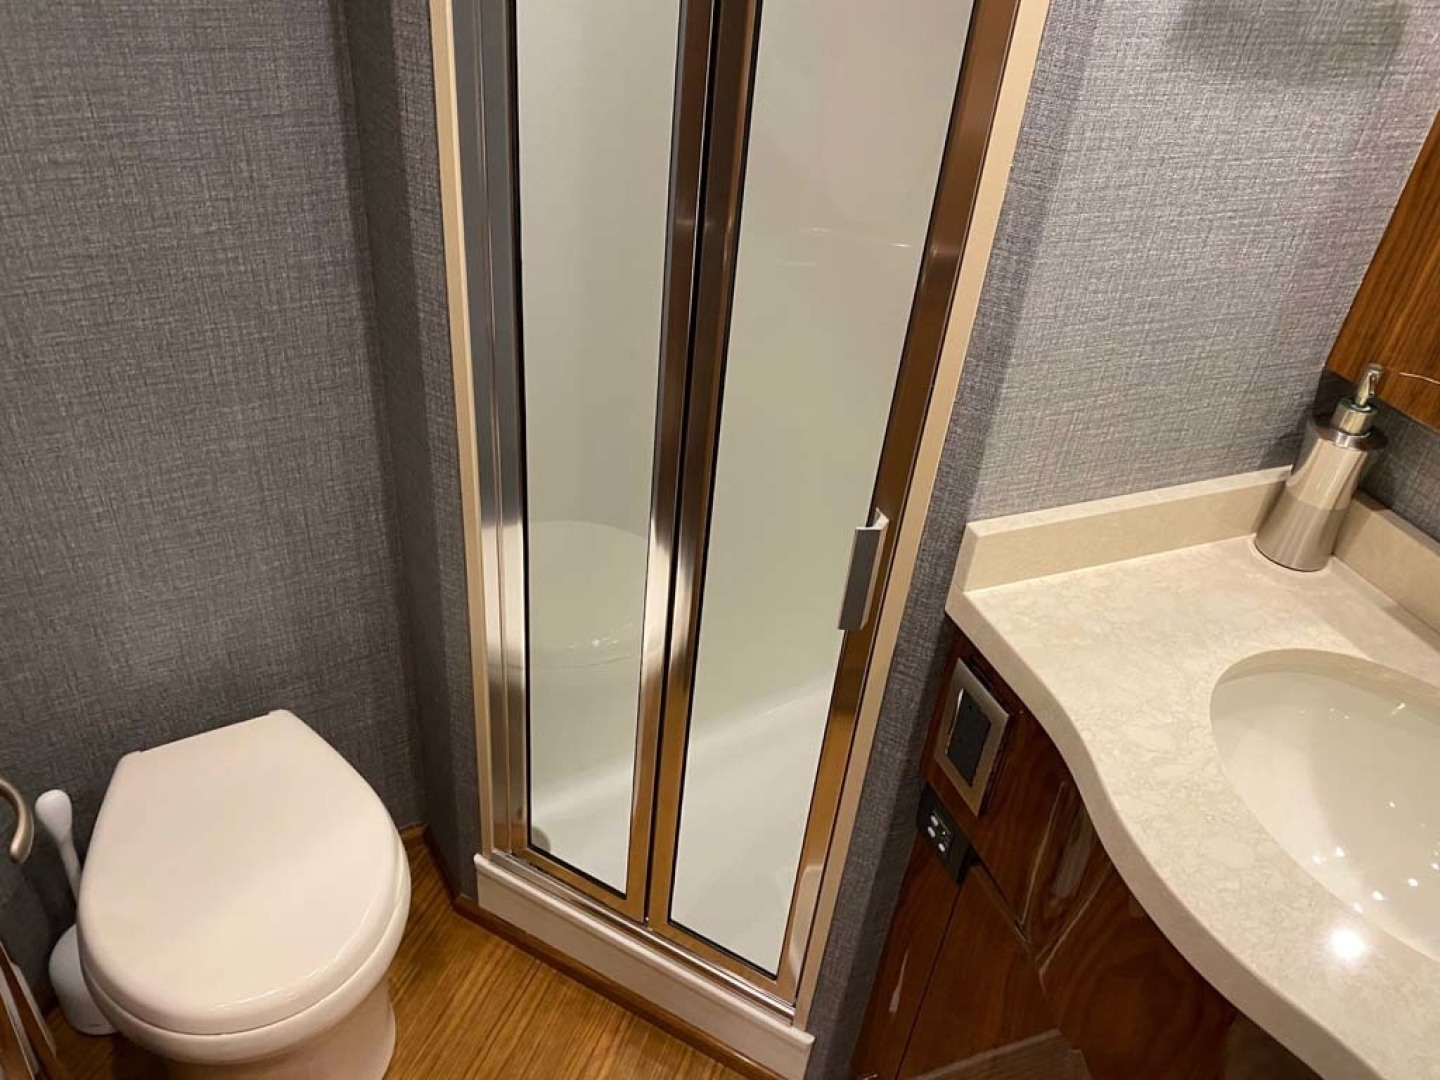 Viking-48 Viking Sport Tower 2018-Pharma Sea Ft Lauderdale-Florida-United States-Fiberglass Stall Shower With Satin Nickel Shower Fixtures And With Drain To Automatic Sump Pump In Bilge-1424062 | Thumbnail